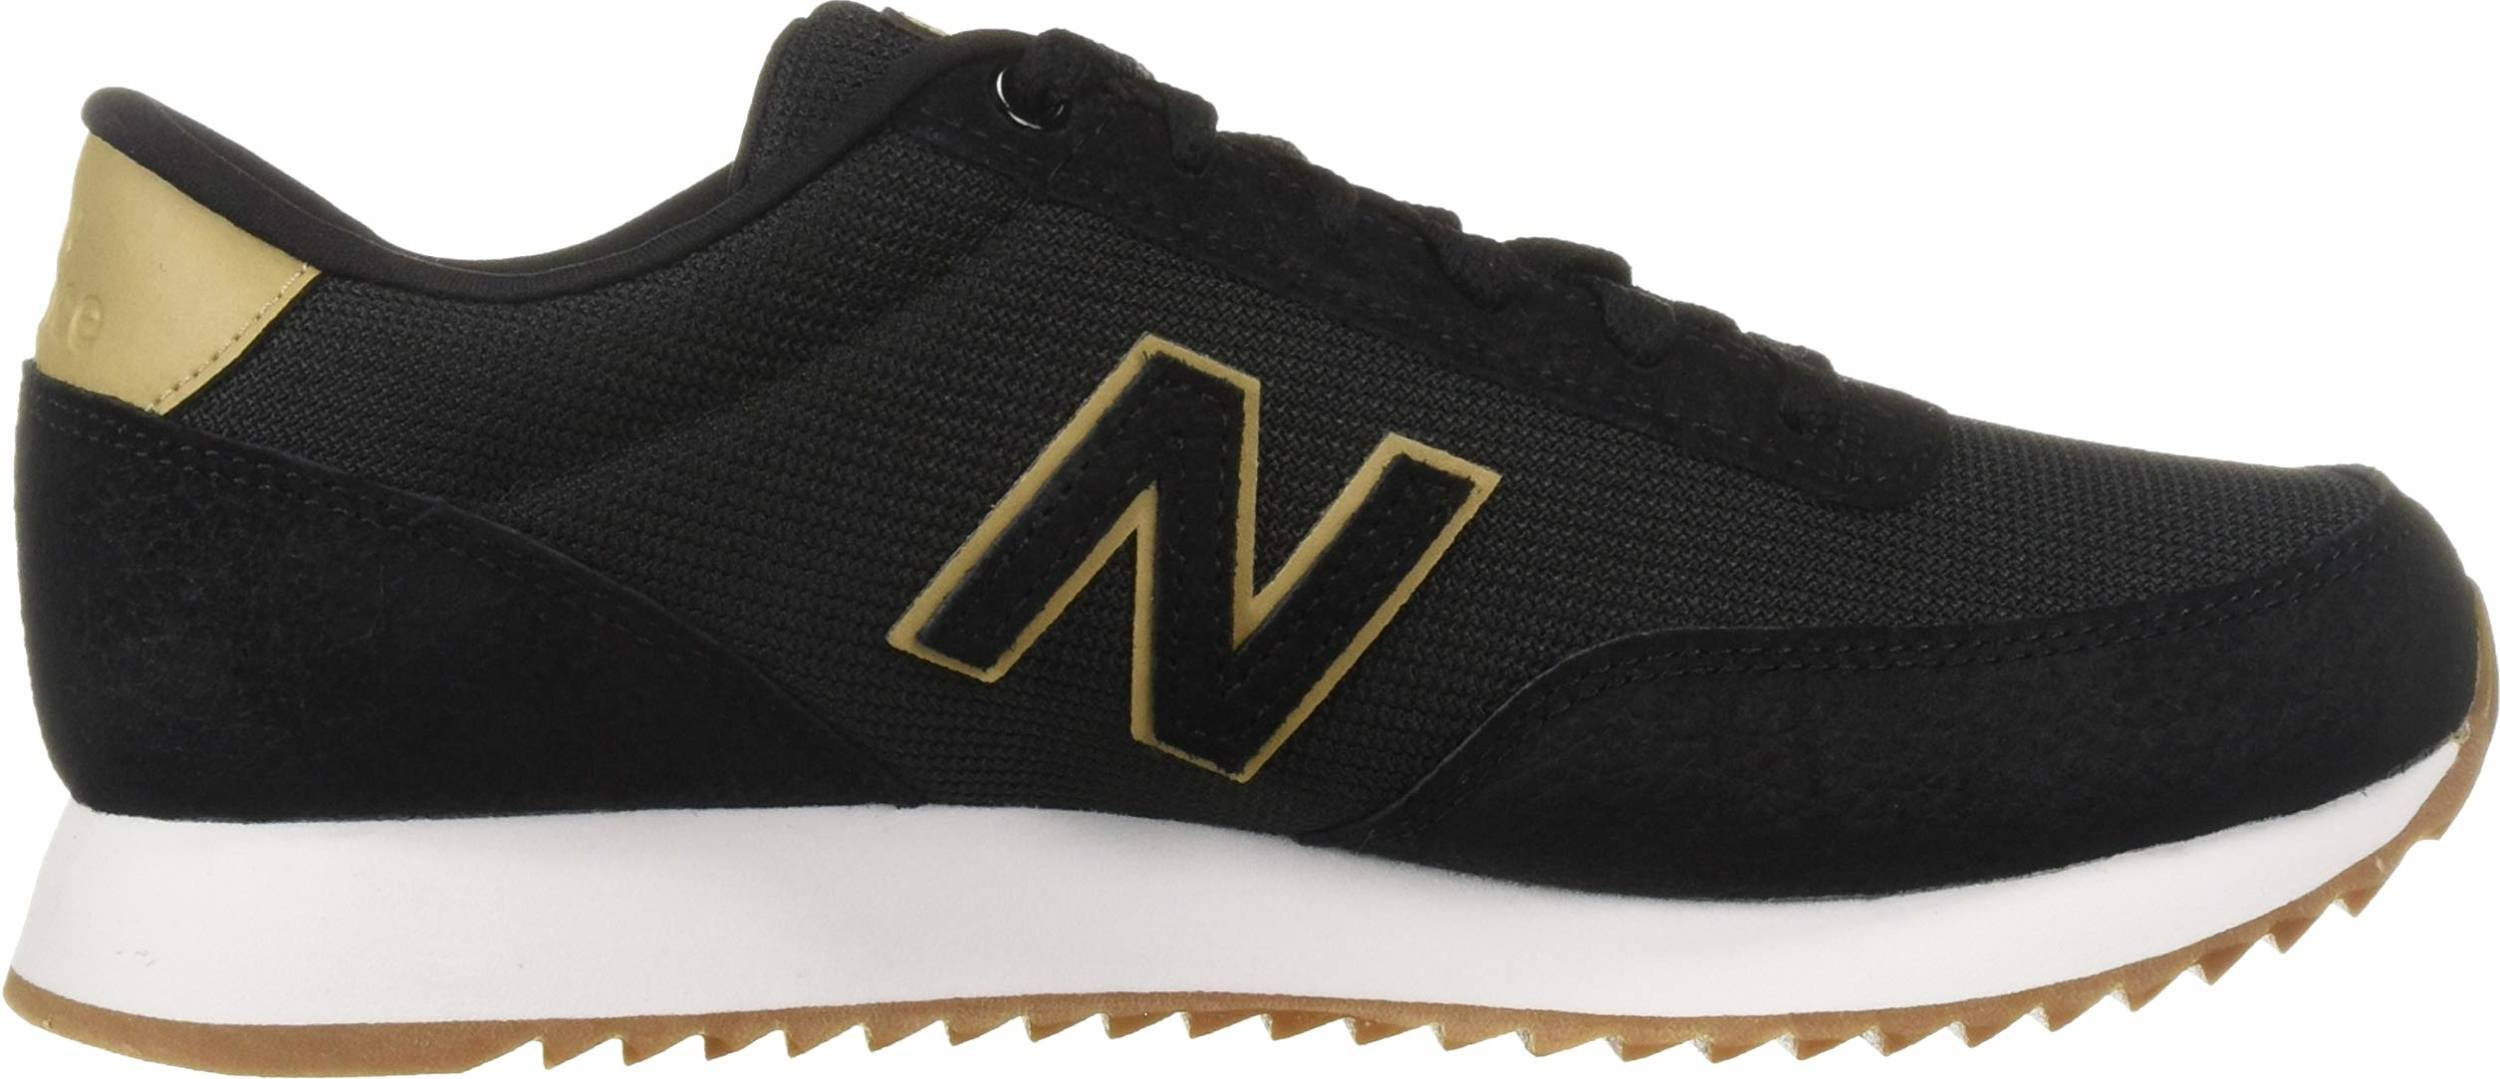 New Balance 501 sneakers in black (only $30) | RunRepeat